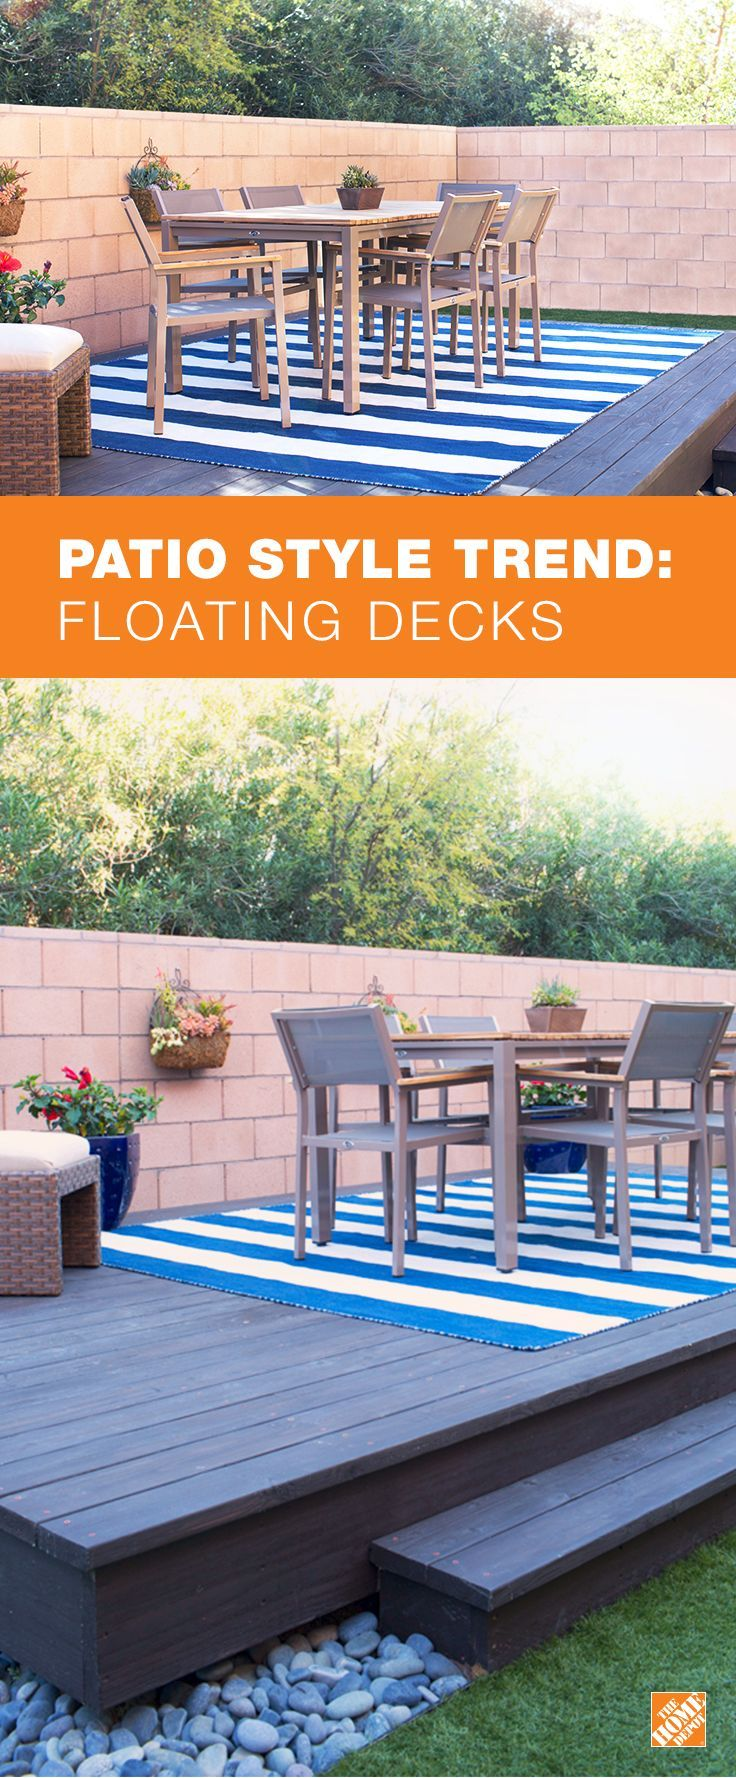 17 ideas about floating deck plans on pinterest easy Floating deck cinder blocks